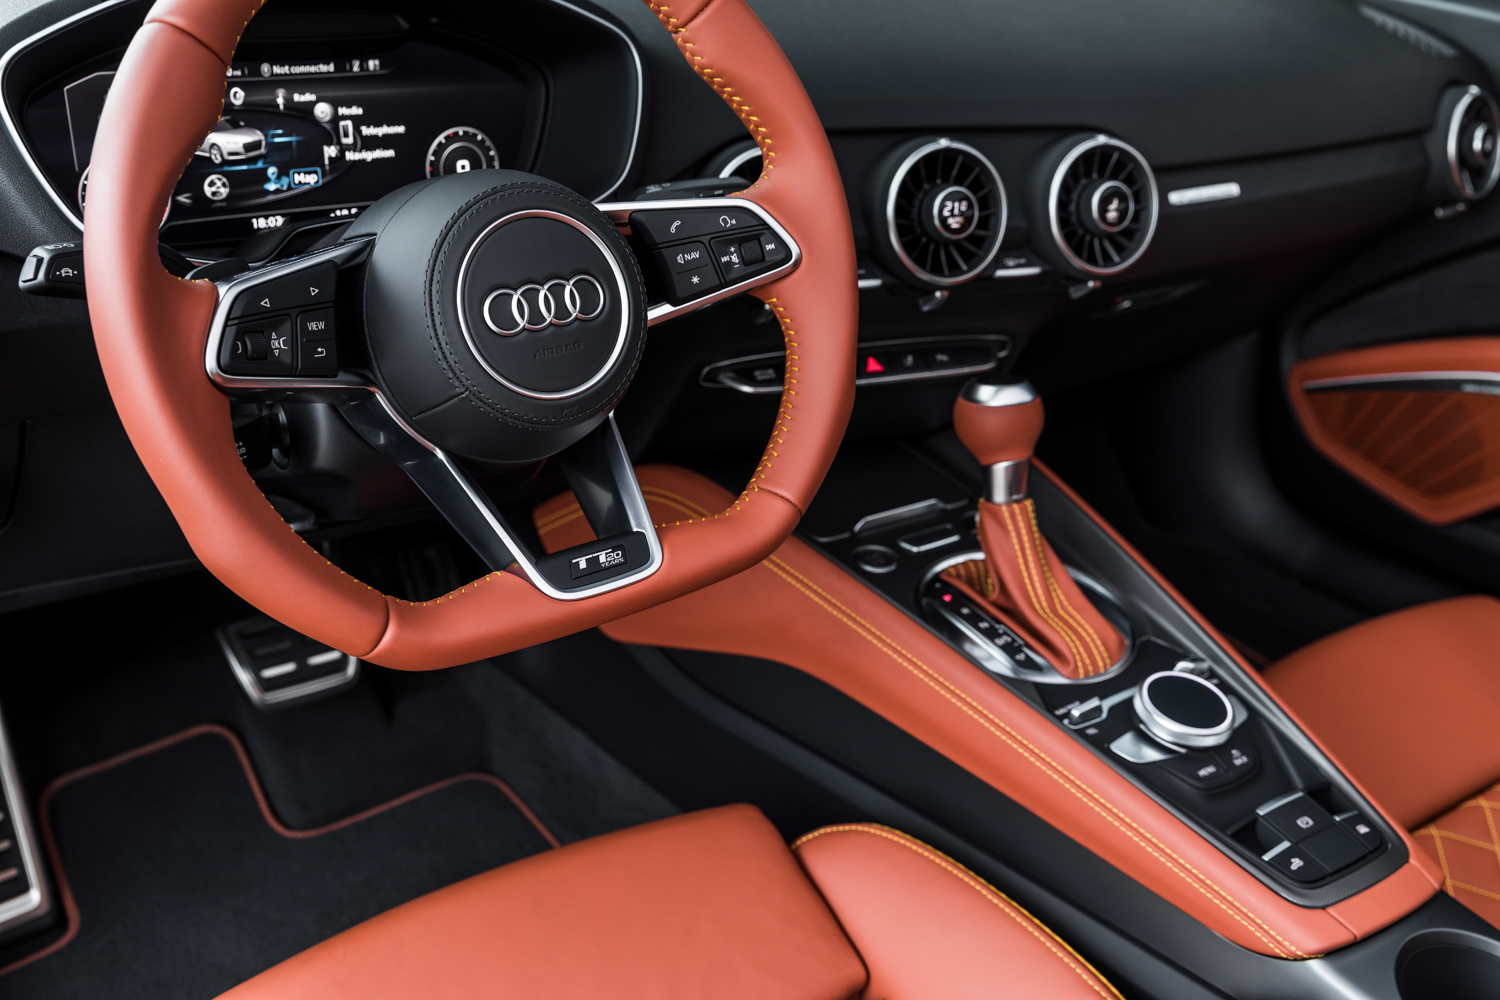 2019 Audi TT 20th Anniversary Edition interior